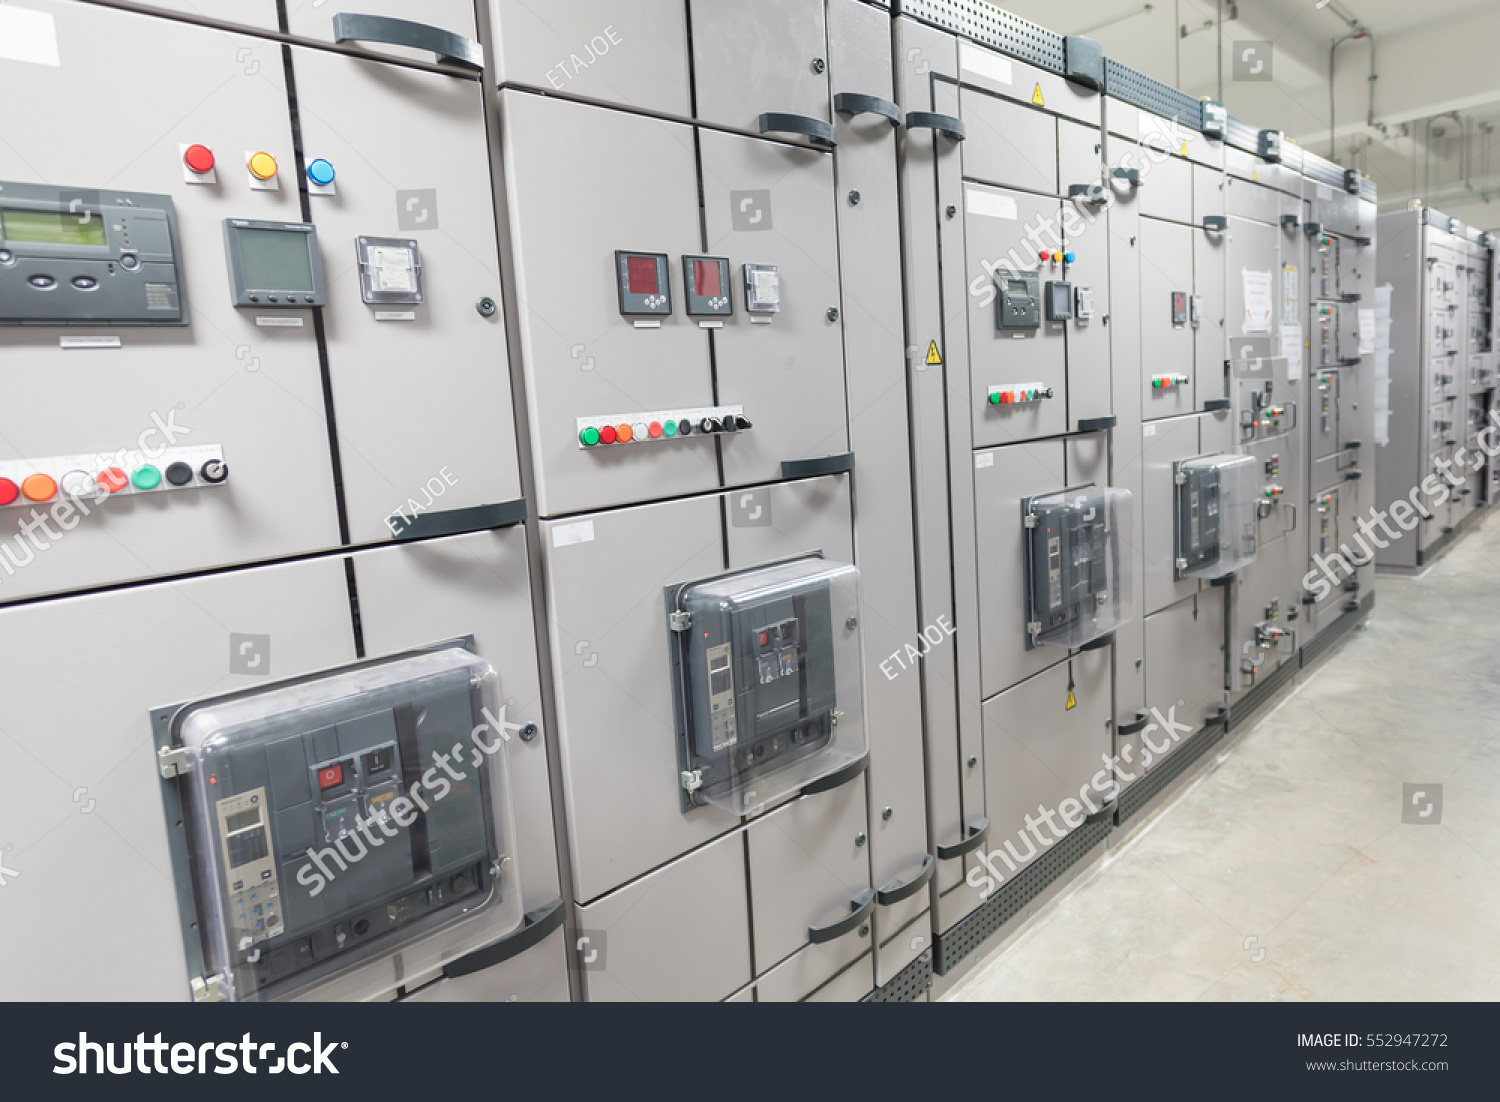 Electrical Switchgearindustrial Electrical Switch Panel Stock Photo ...